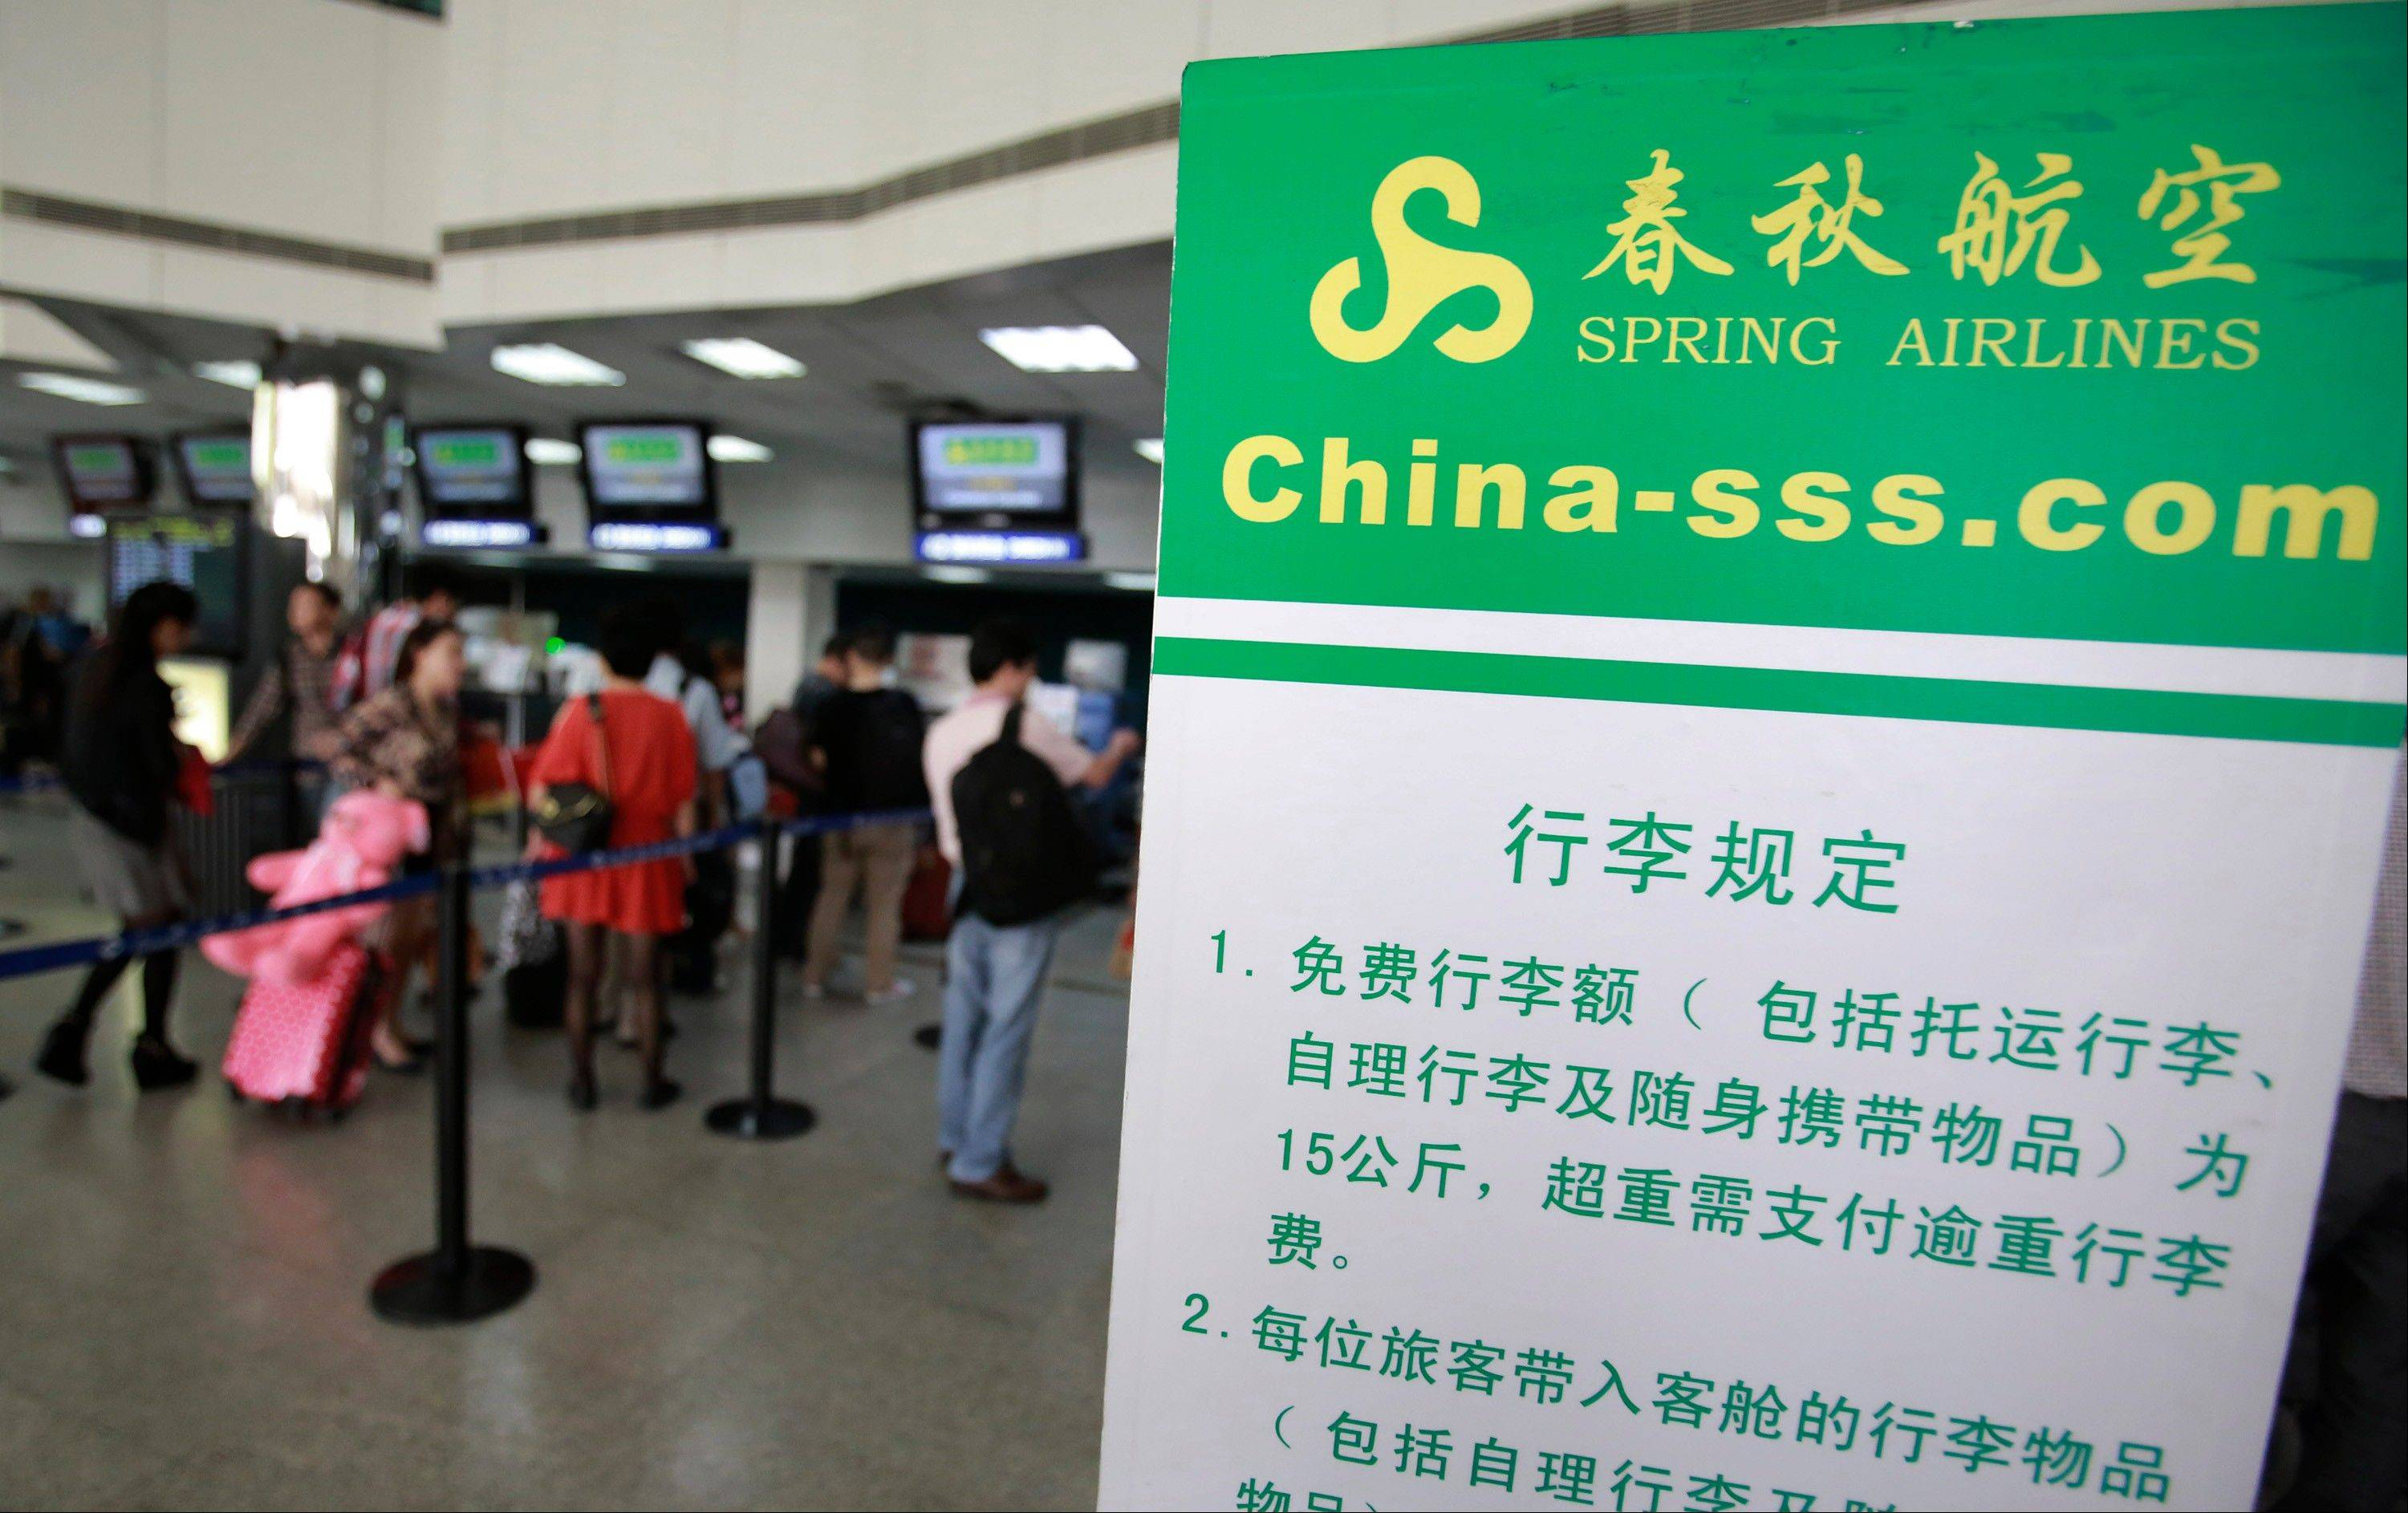 Passengers line up at a check-in counter of Spring Airline at Hongqiao Airport in Shanghai, China. A budget airline boom that is sweeping Asia is leaving Chinese travelers behind. From almost none a decade ago, the region now has more than 50 low cost carriers. But China's government still keeps tight control of the rapidly growing airline industry.